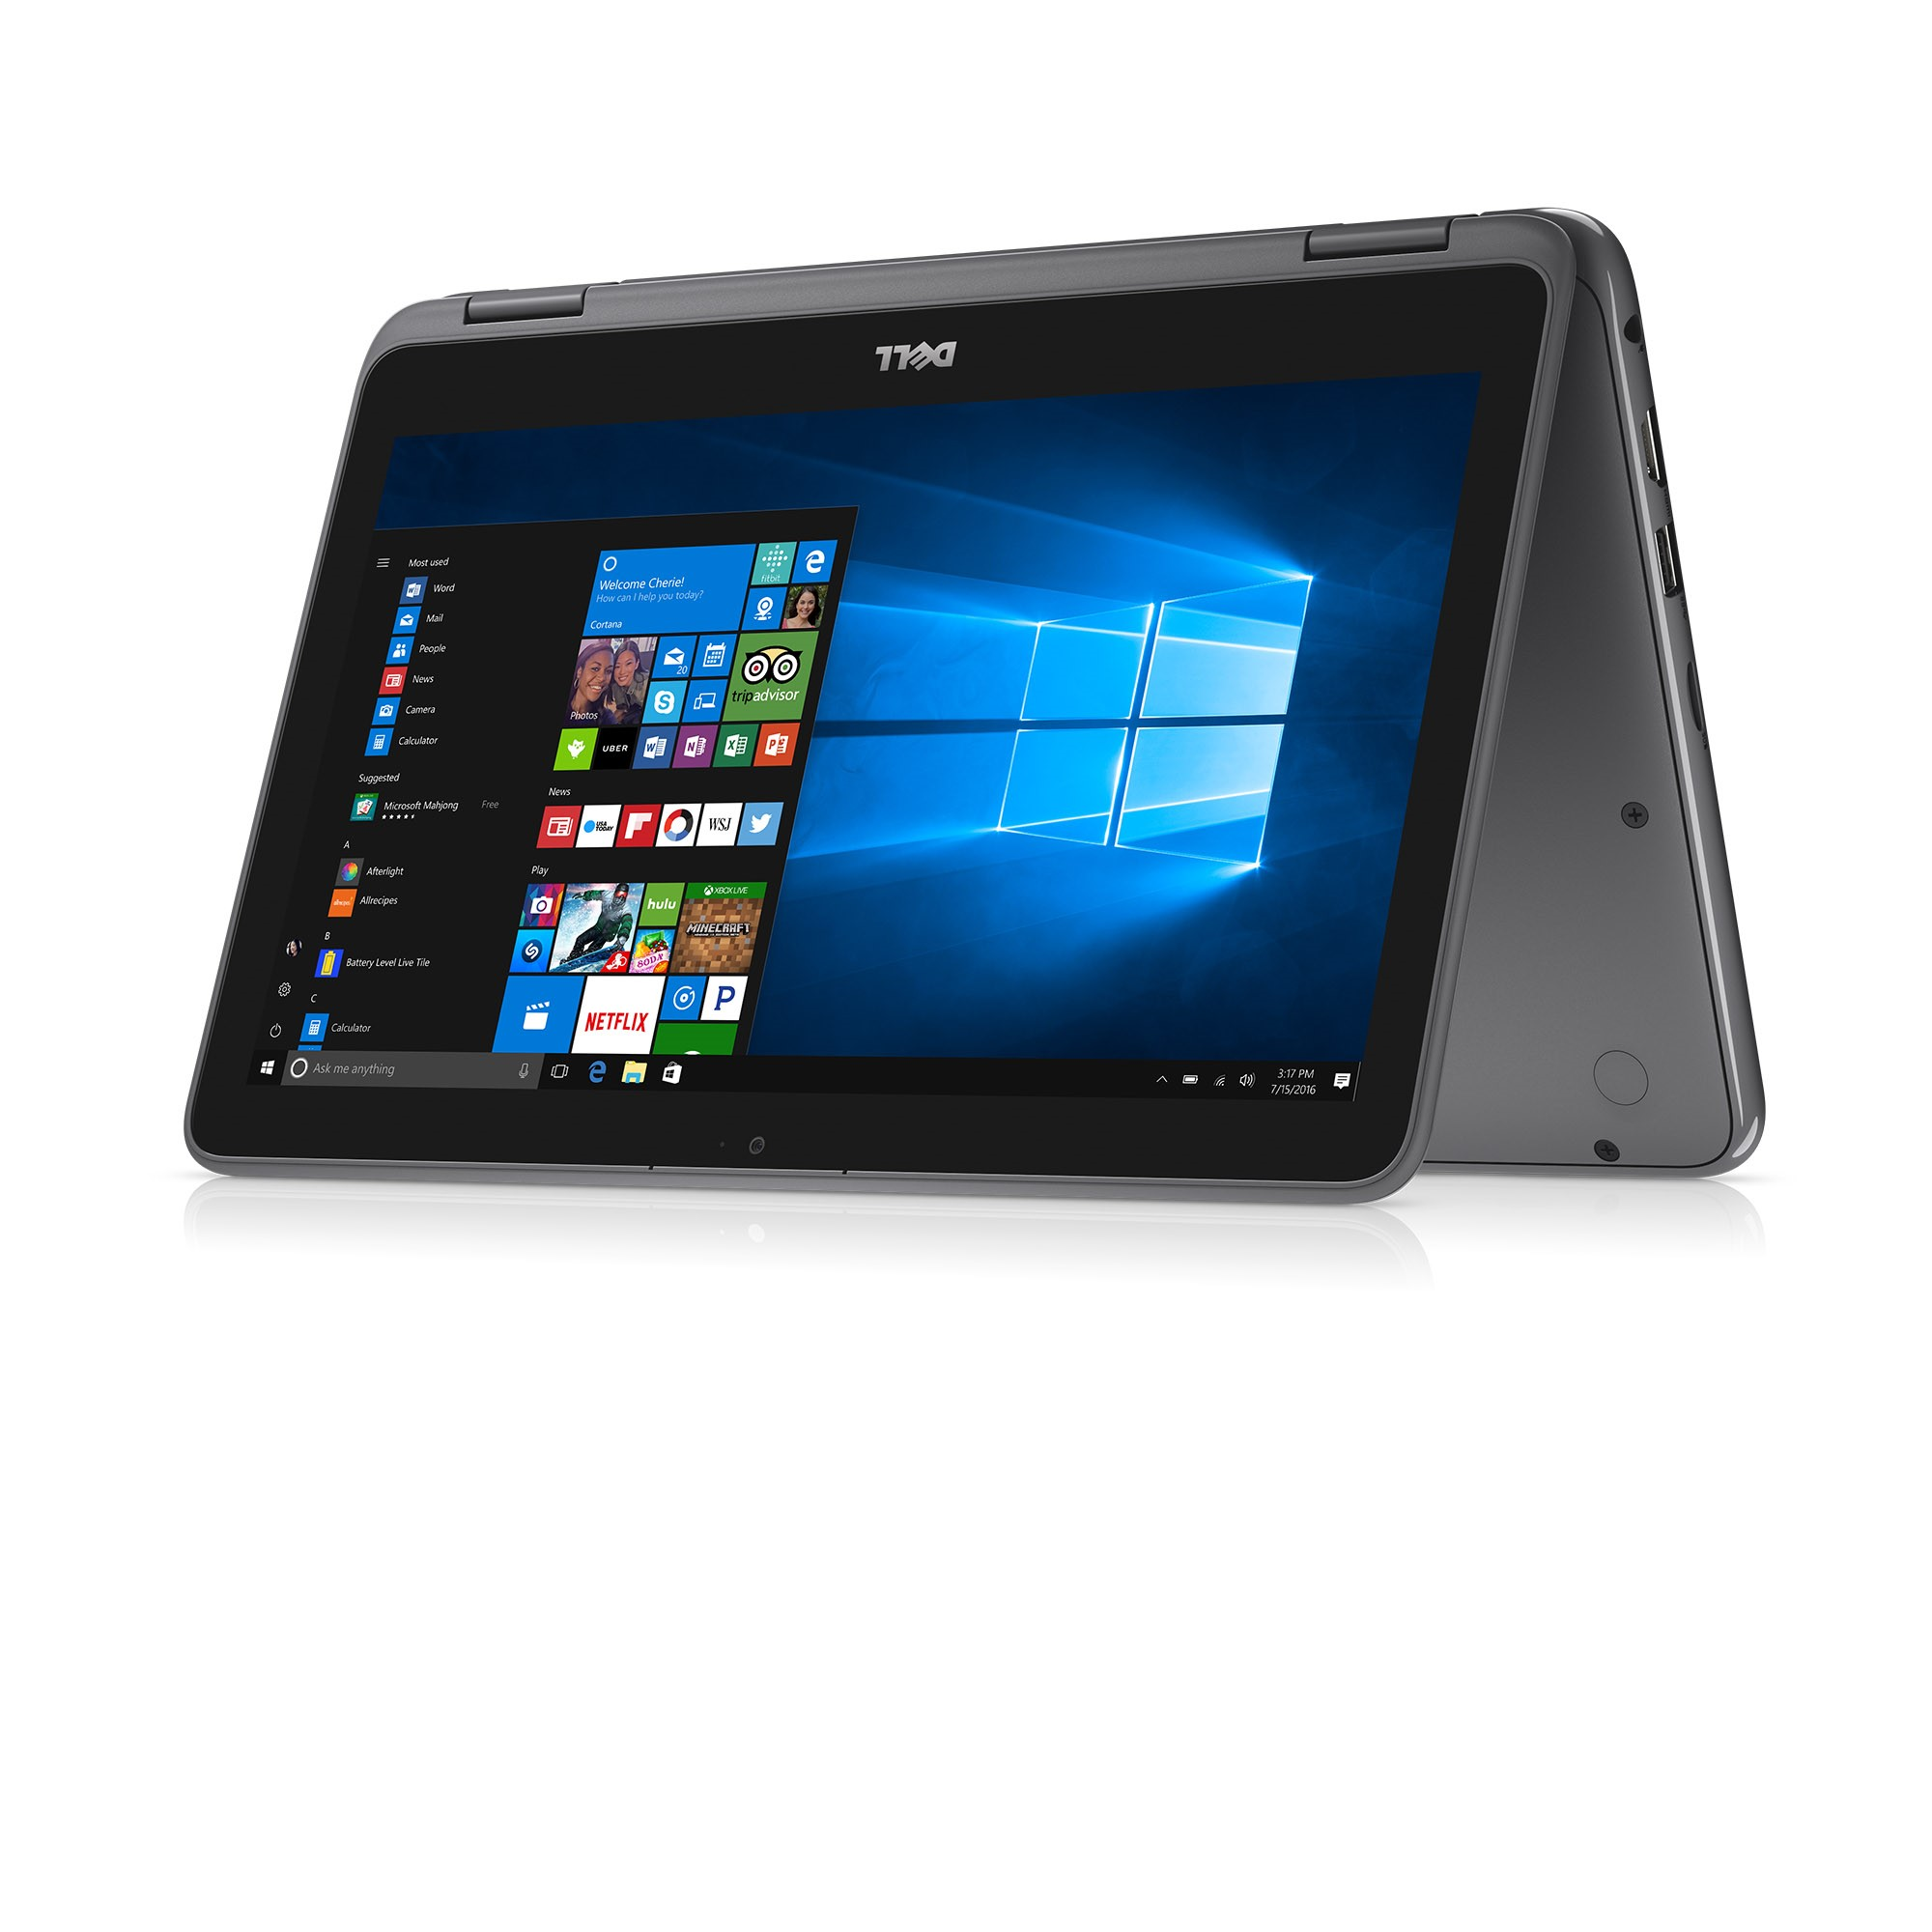 Dell - Inspiron 11 3000 2-in-1, 11.6-inch HD, AMD A6-9220e, 4GB 2400MHz DDR4, 32GB eMMC Storage, Integrated Graphics AMD APU